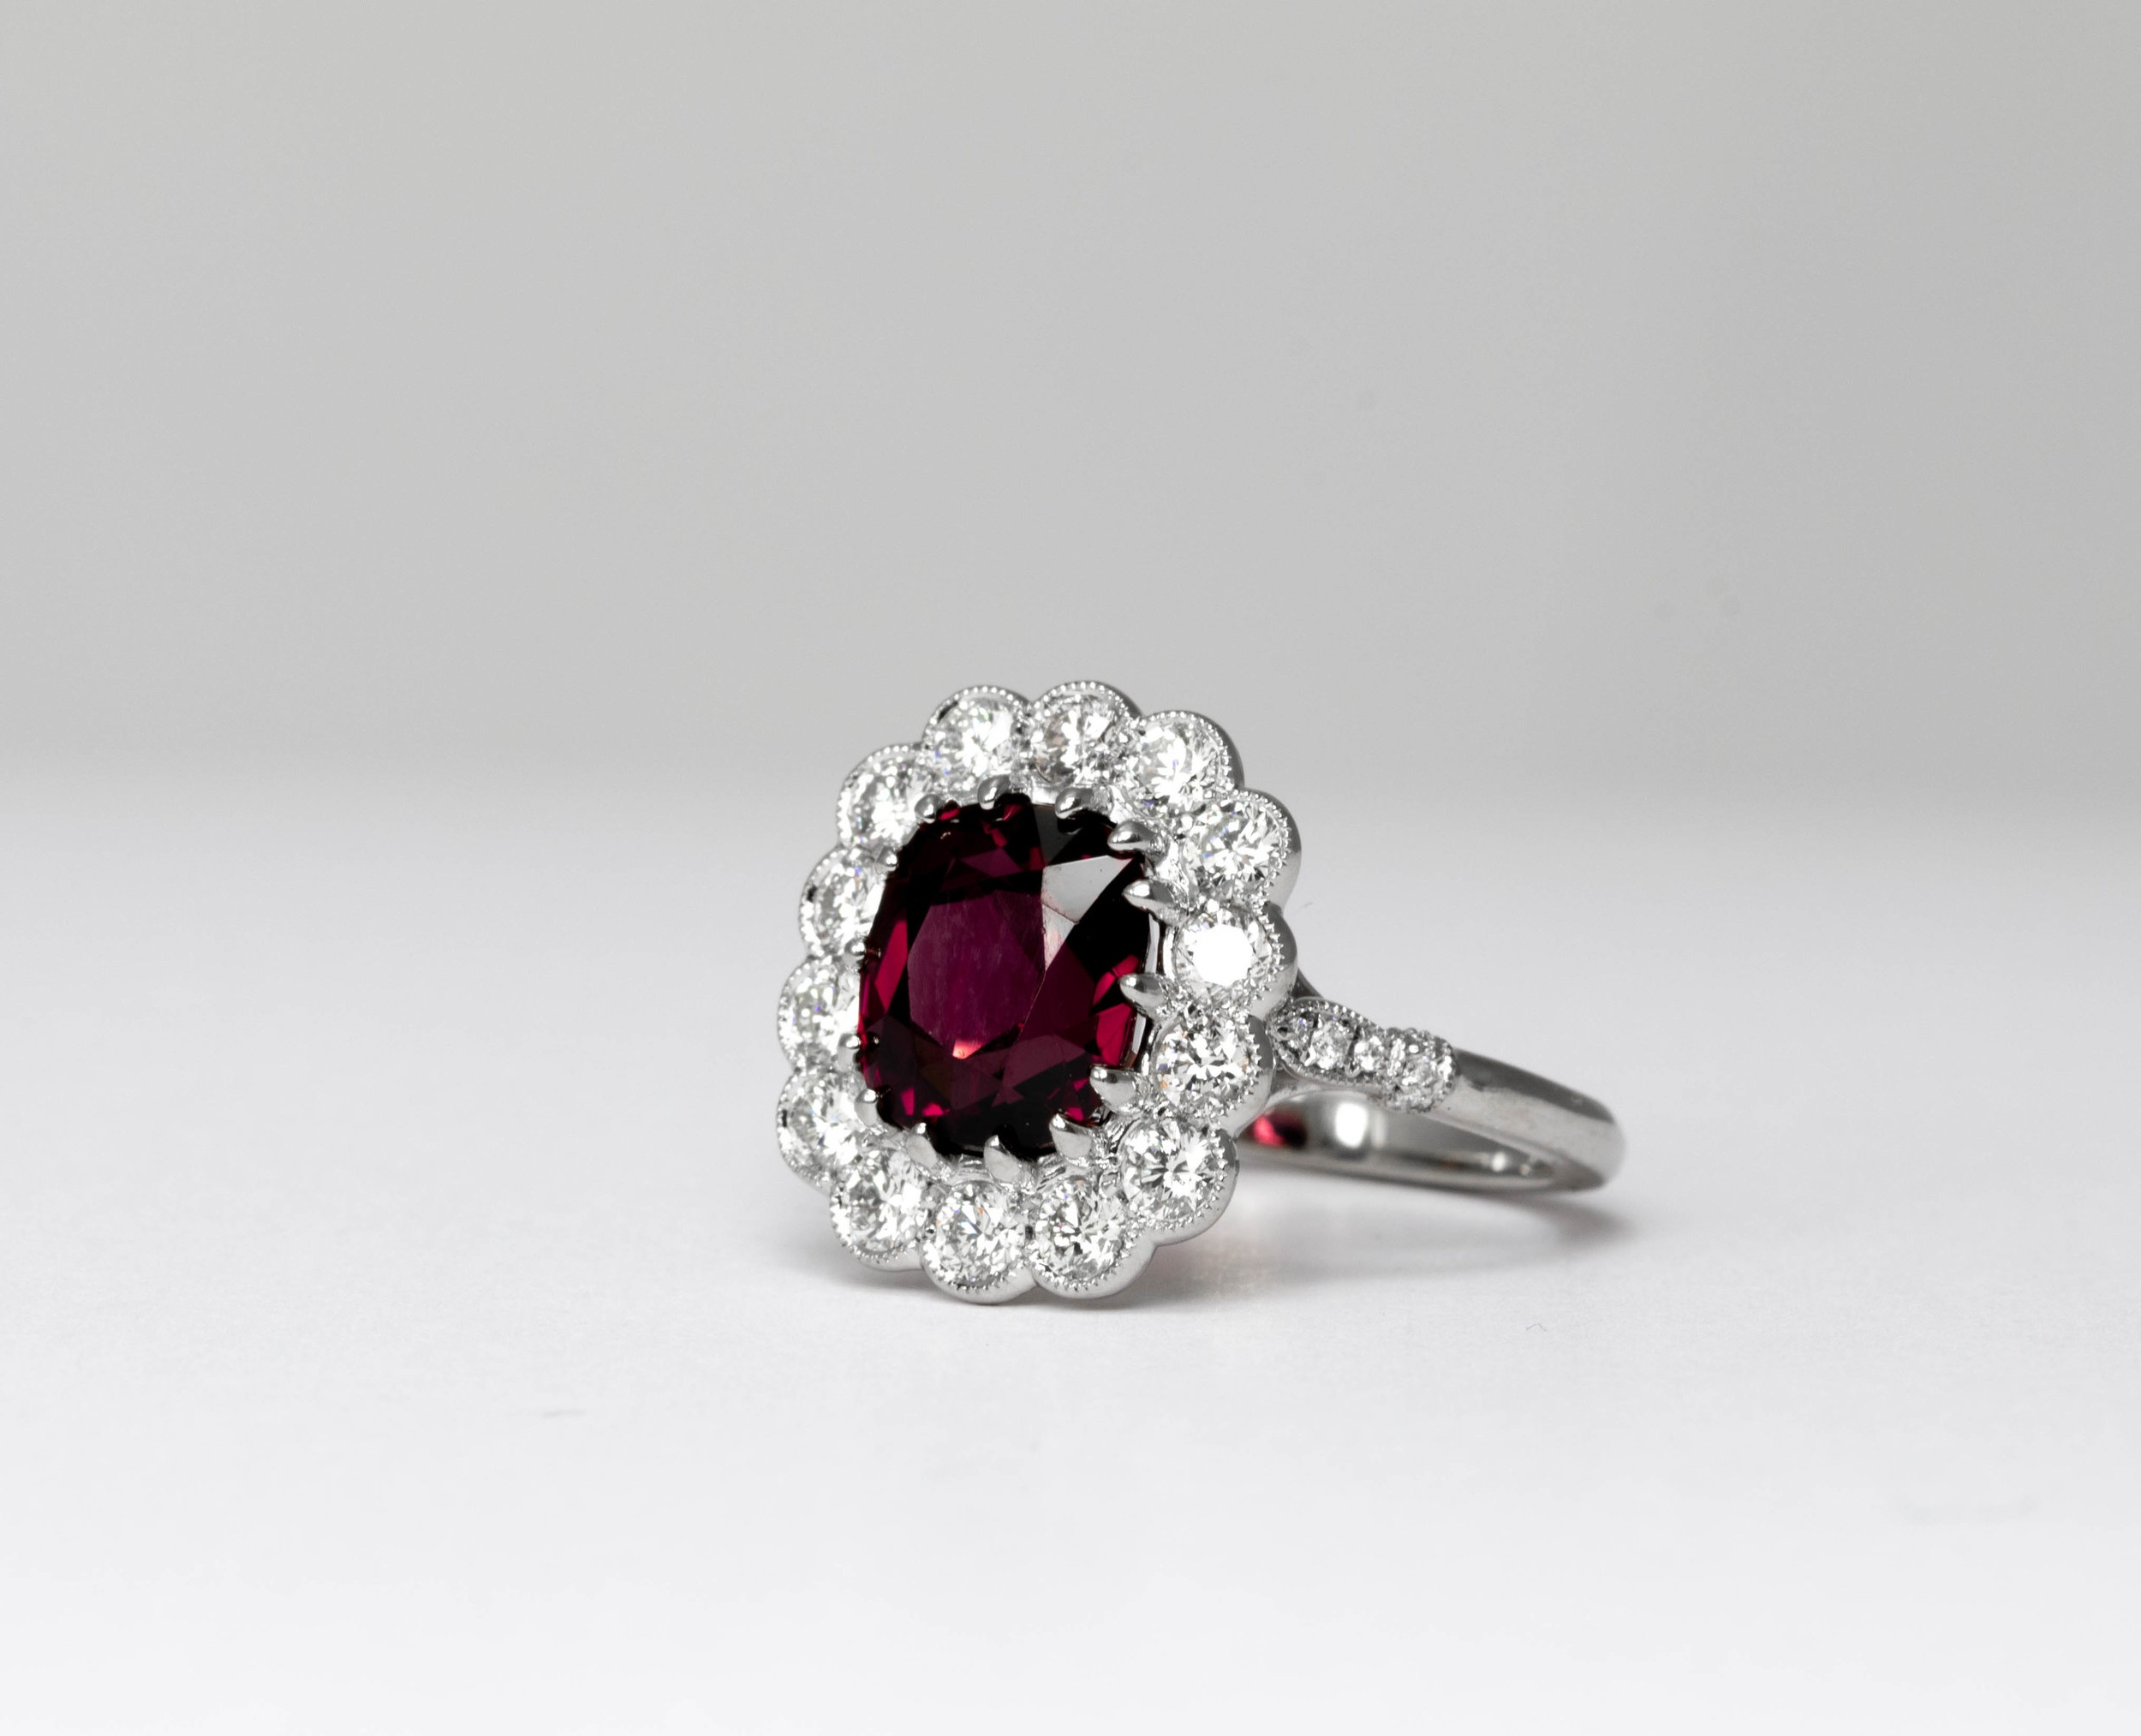 Platinum mounted, diamond and cushion cut grape garnet Edwardian style cluster ring. Made in Chichester, England.